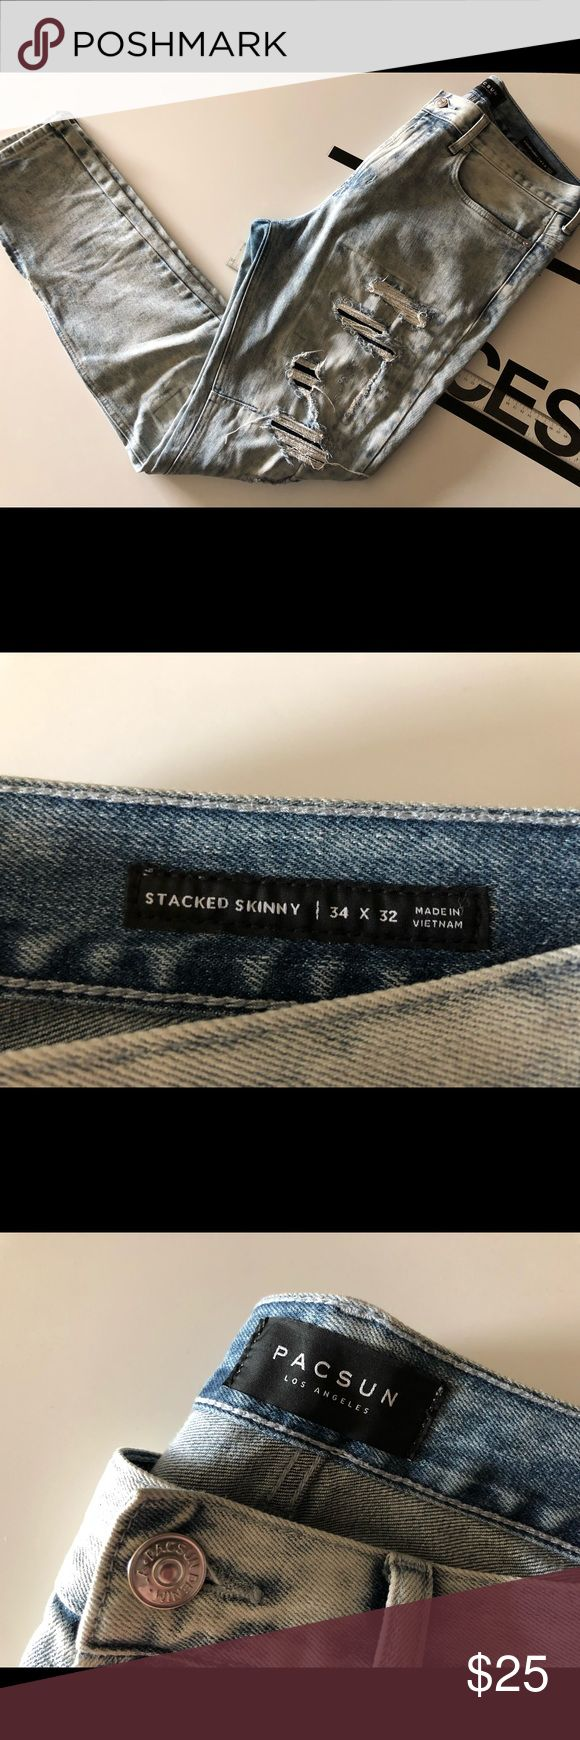 Mens Pacsun Stacked Skinny Acid Washed Jeans Lightly worn, still in excellent condition. Purchased from pacsun for 64.95. Pacific Sunwear Jeans Skinny